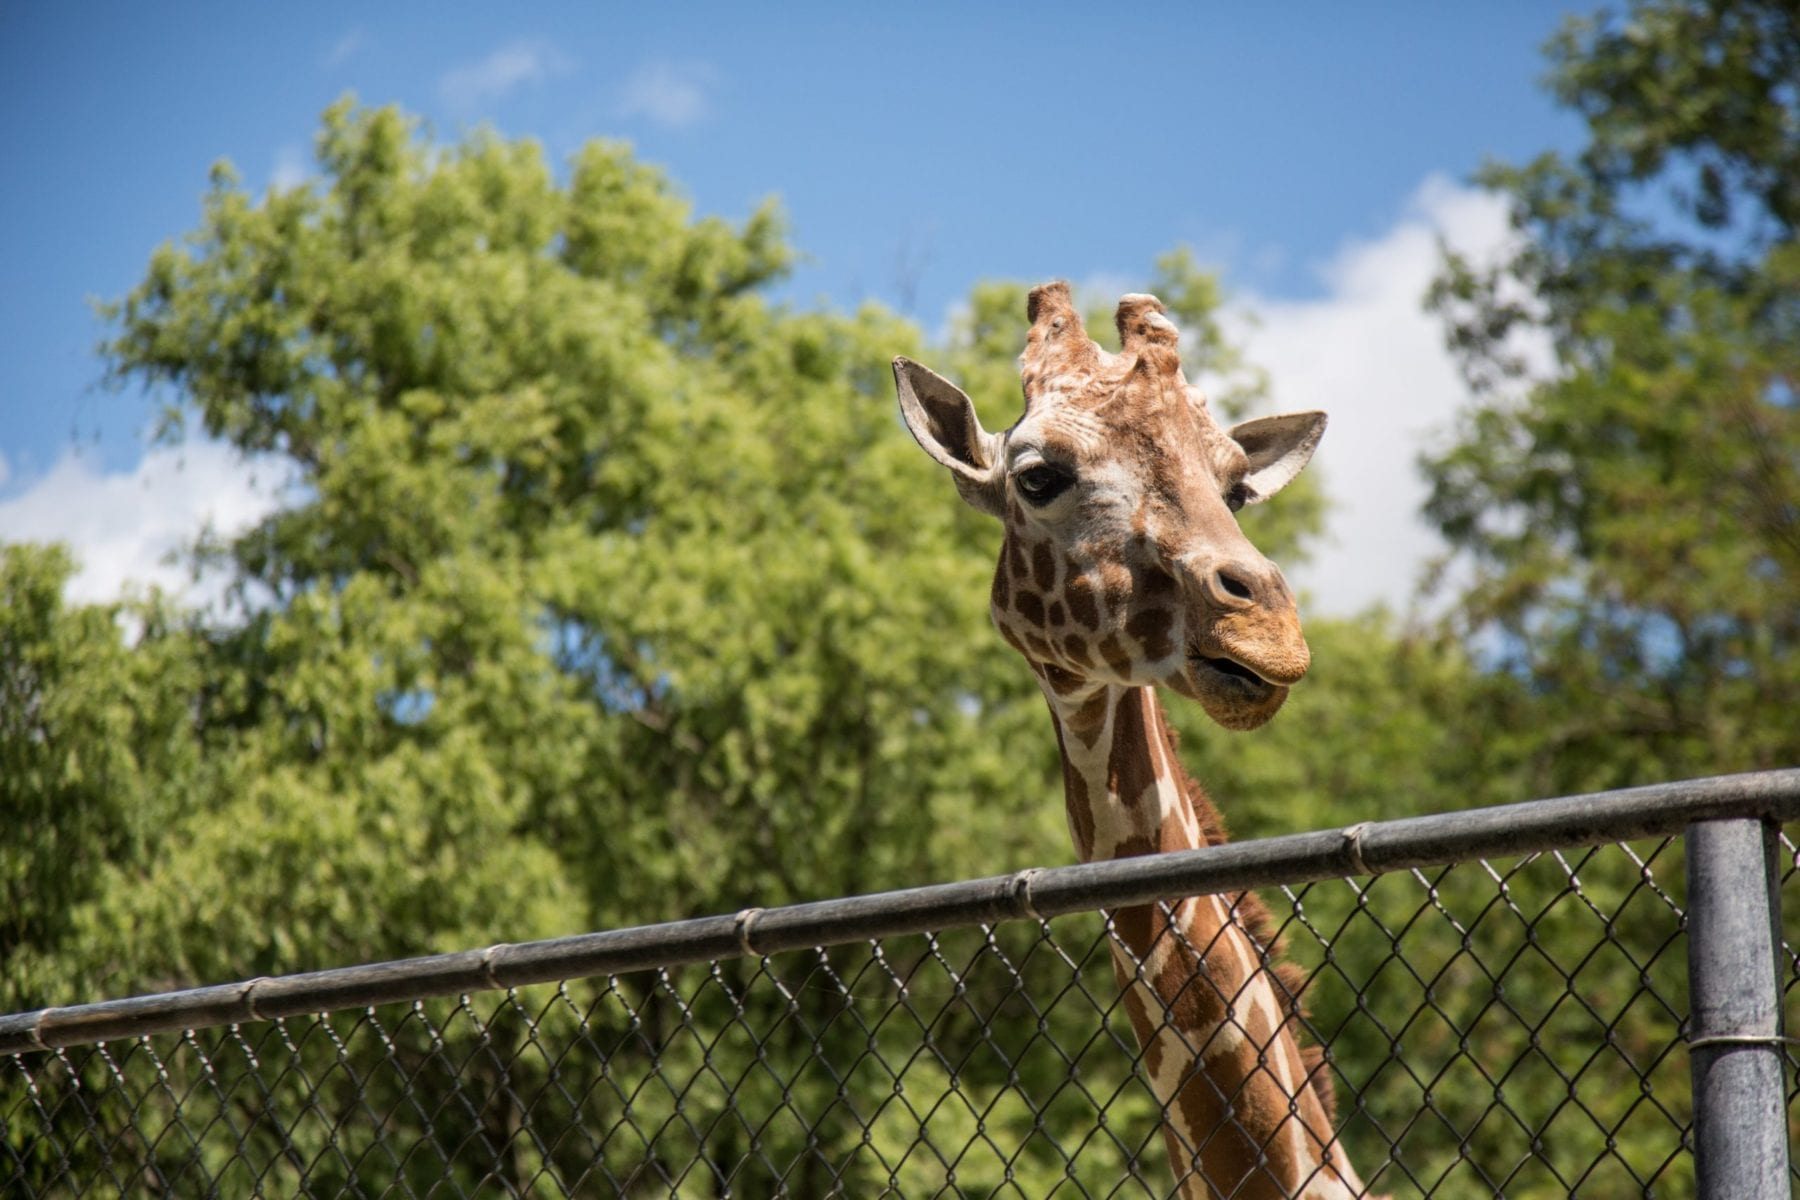 Take a trip to the zoo without needing to leave the house!